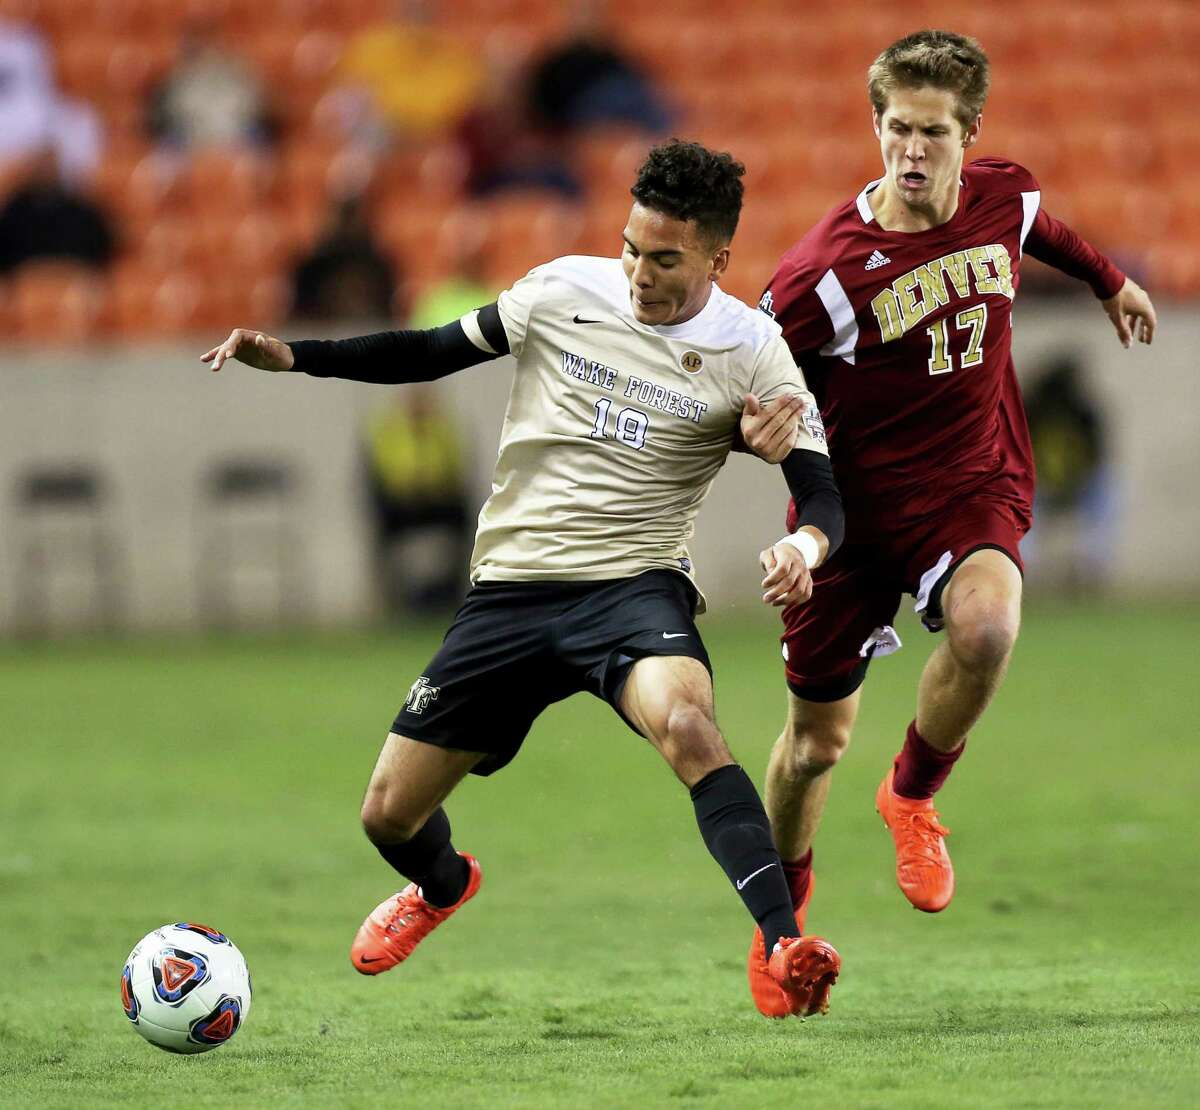 Denver's Karsten Hanlin (17) tries to stop Wake Forest's Alex Knox (18) from getting control of the ball during the first half of the NCAA soccer men's College Cup semifinal Friday, Dec. 9, 2016, in Houston. (Yi-Chin Lee/Houston Chronicle via AP )